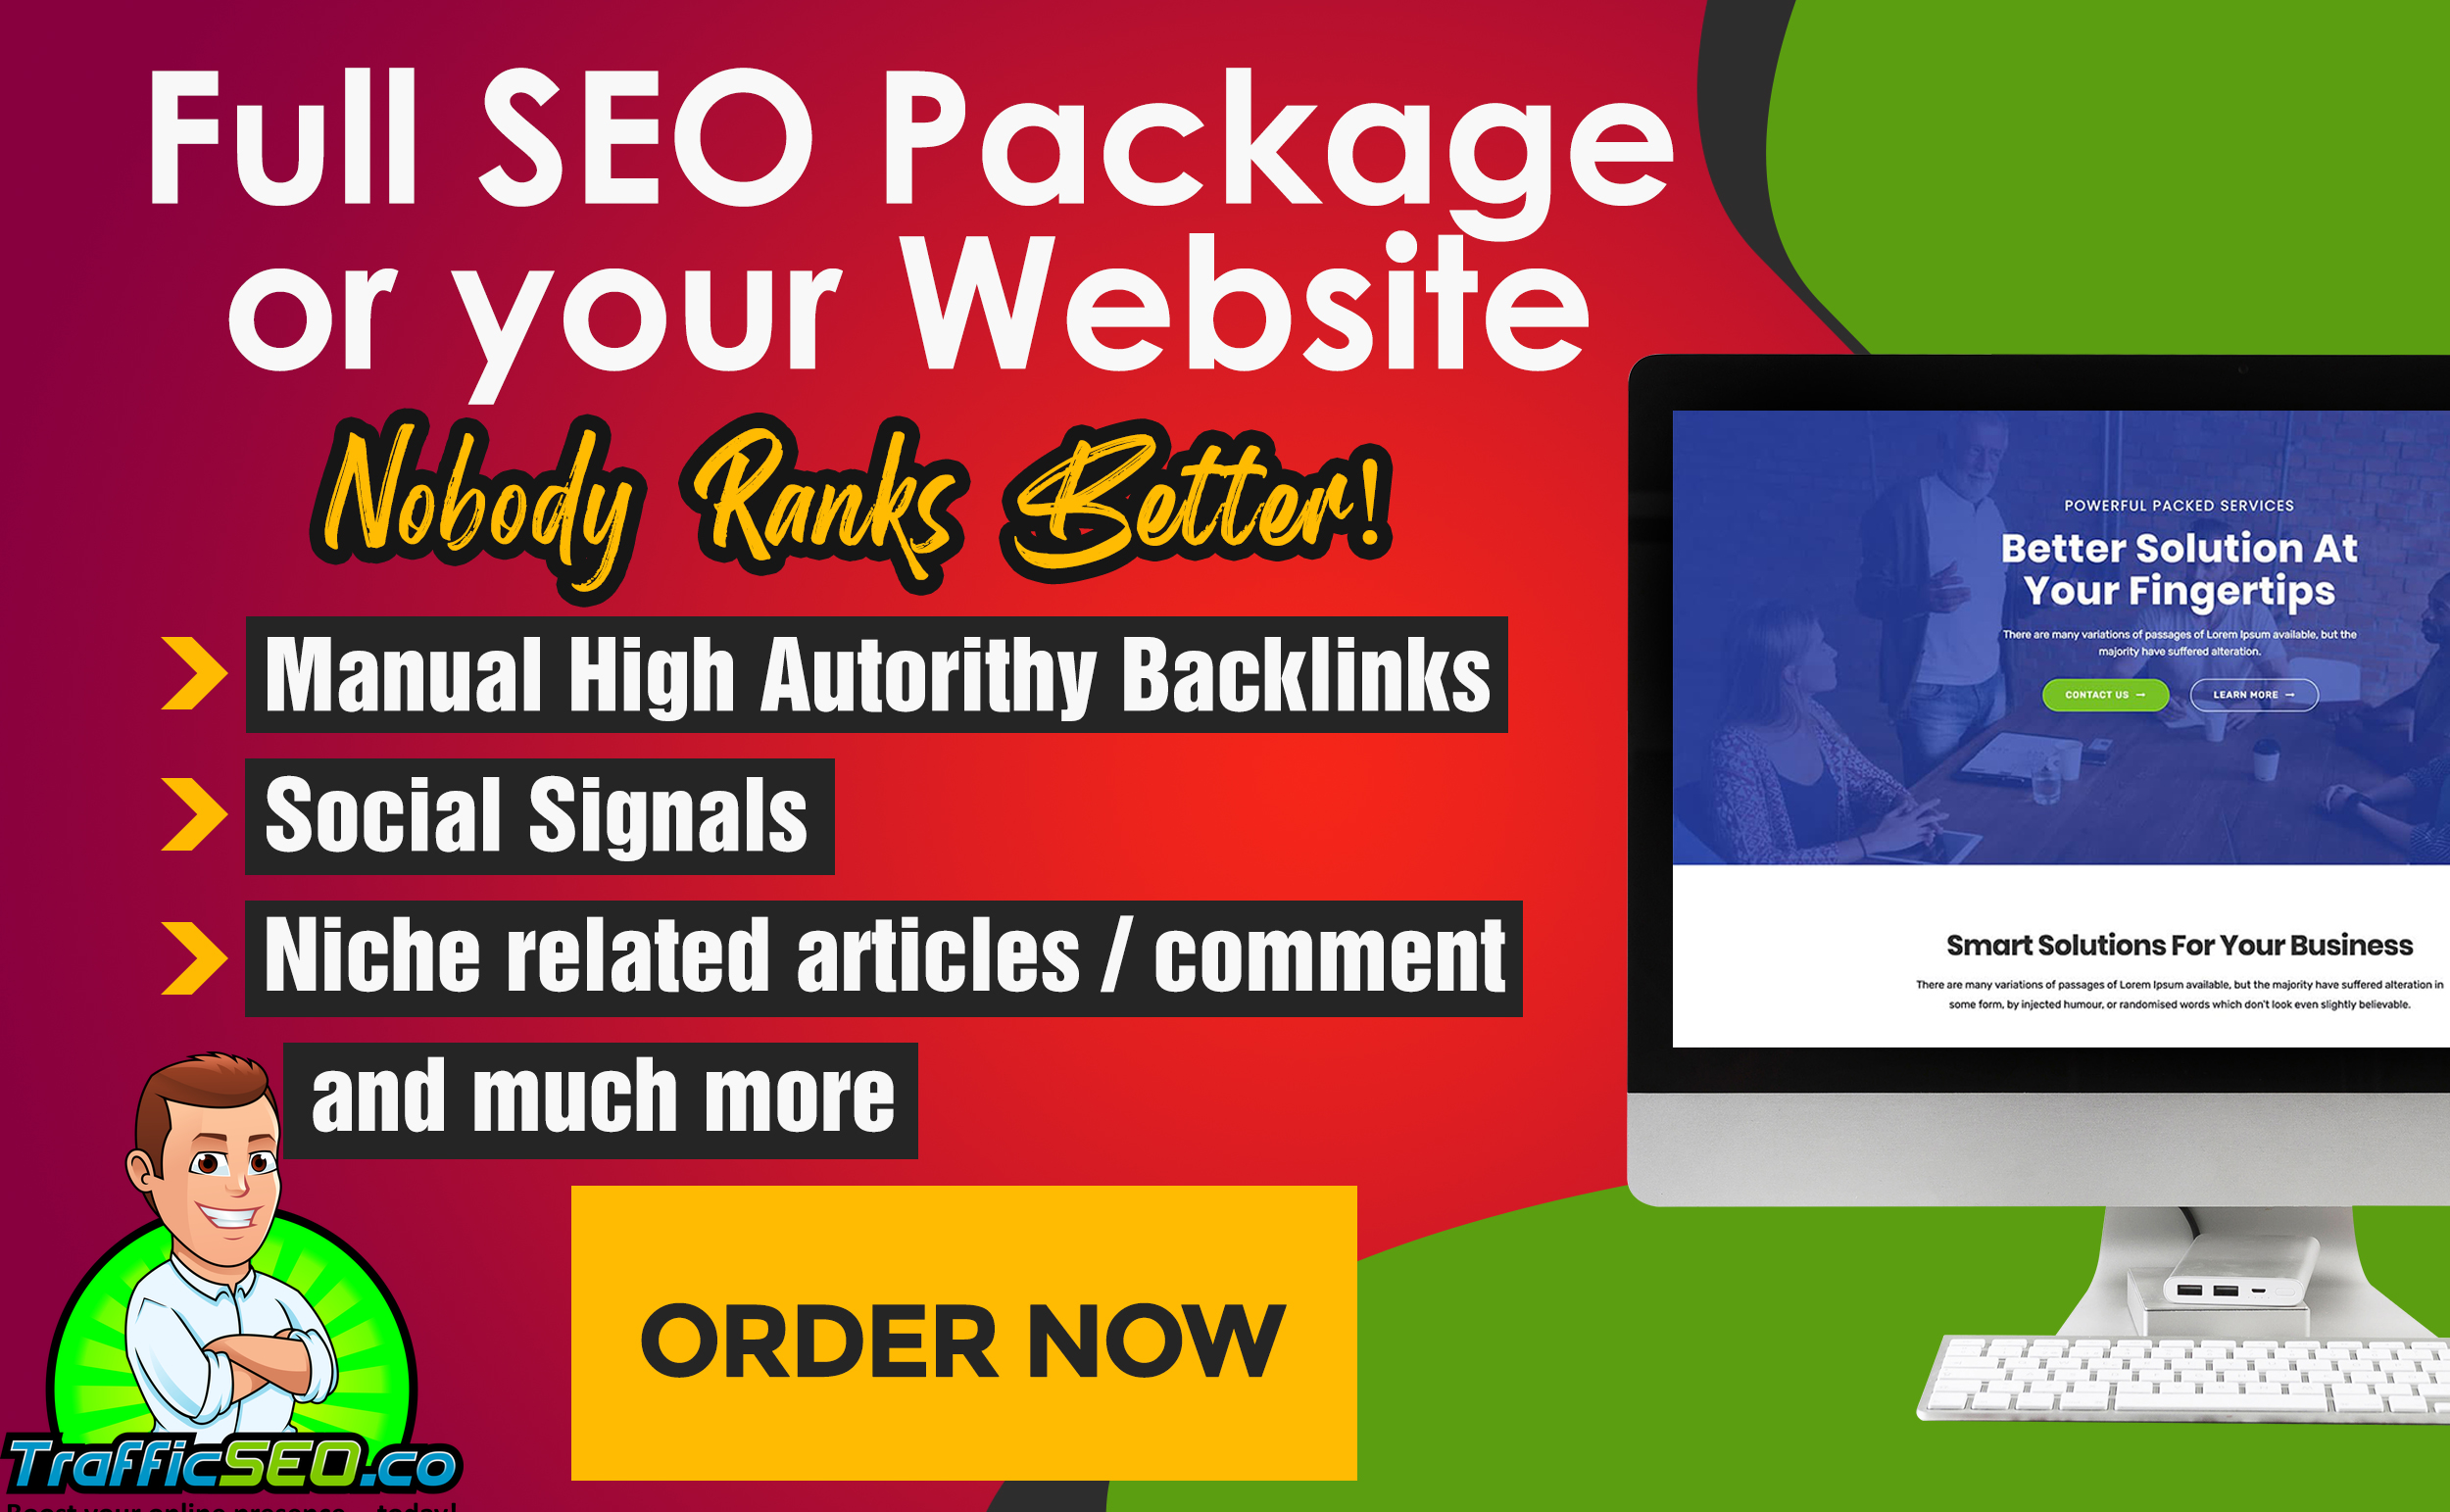 BOOST your WEBSITE to the HEAVEN of SEO - Complete SEO Package